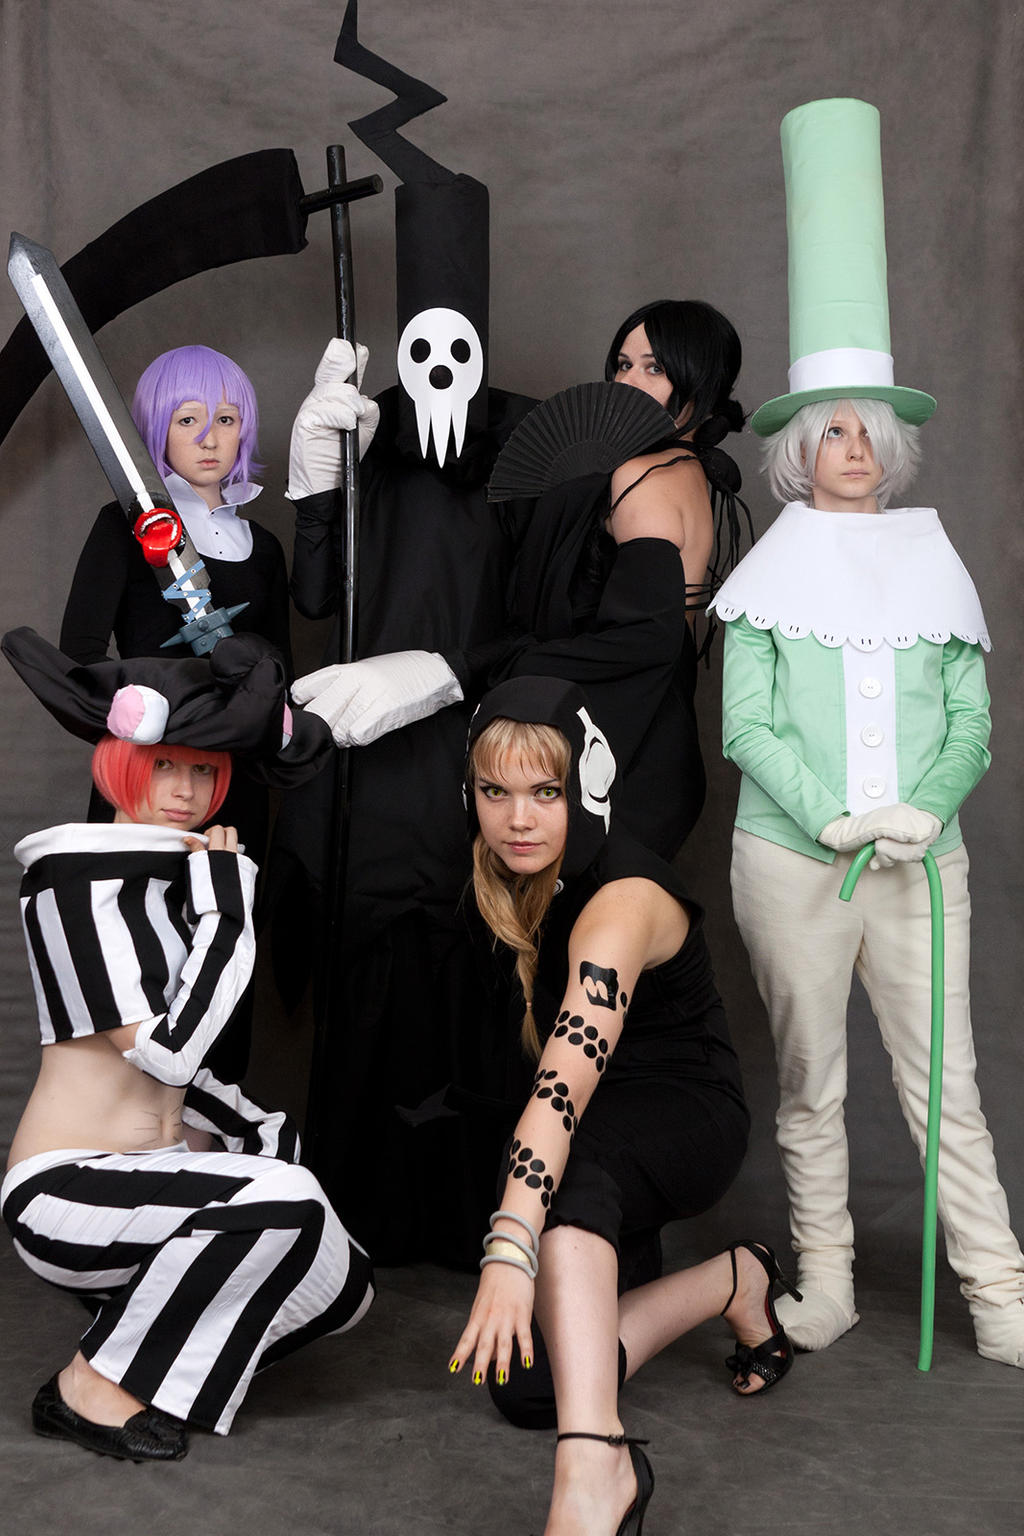 Soul eater cosplayers pictures - design wallpaper tumblr hippie